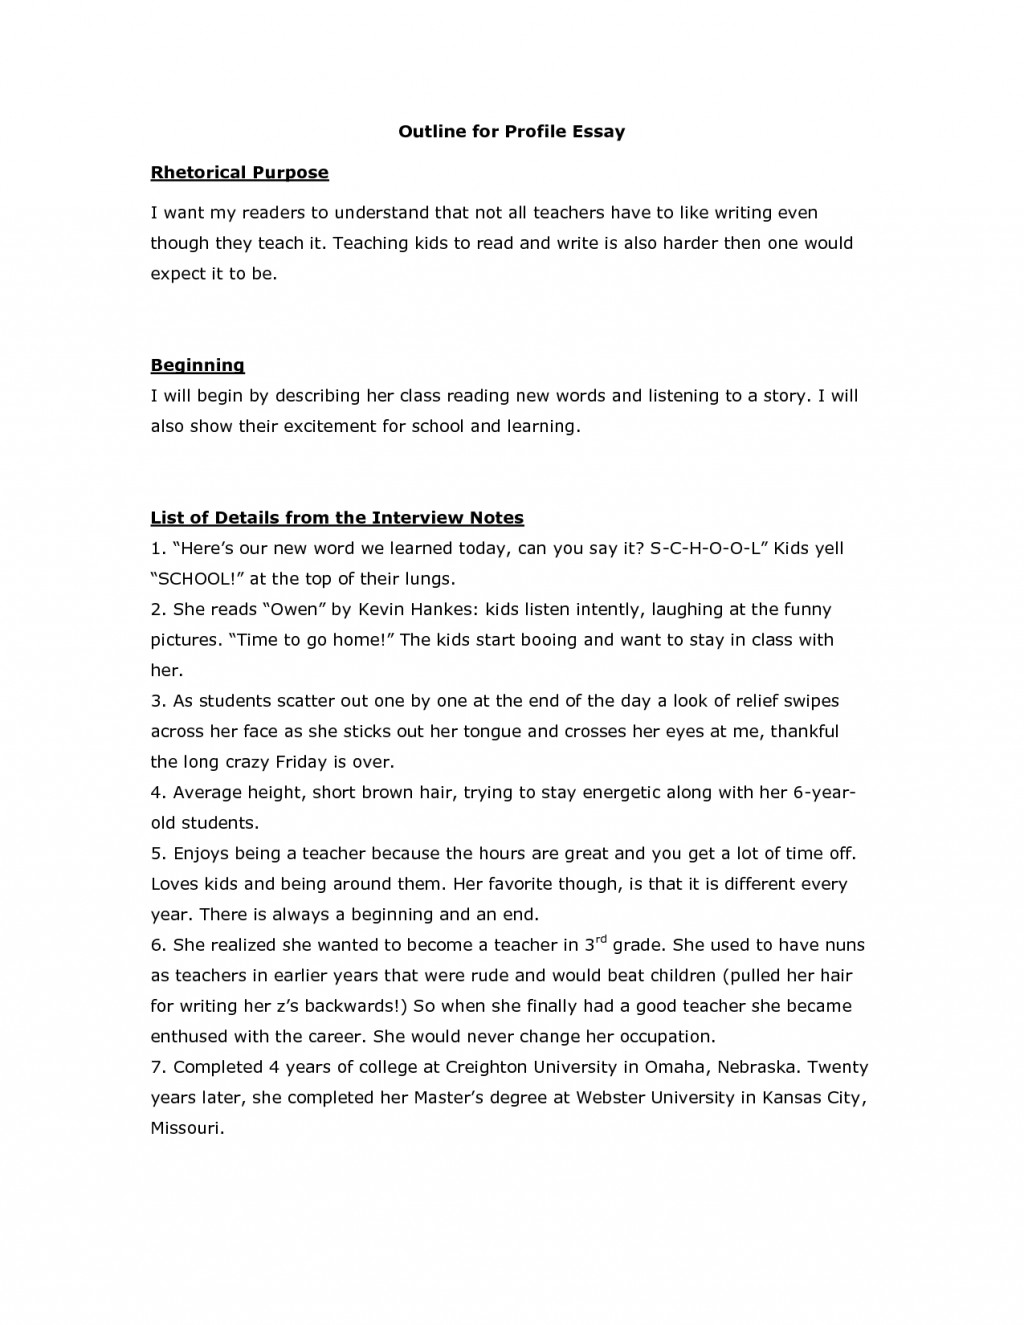 003 Profile Essay Outline Example Personality Topics Examples Of Big Five Samples My Singular Layout Paper Large